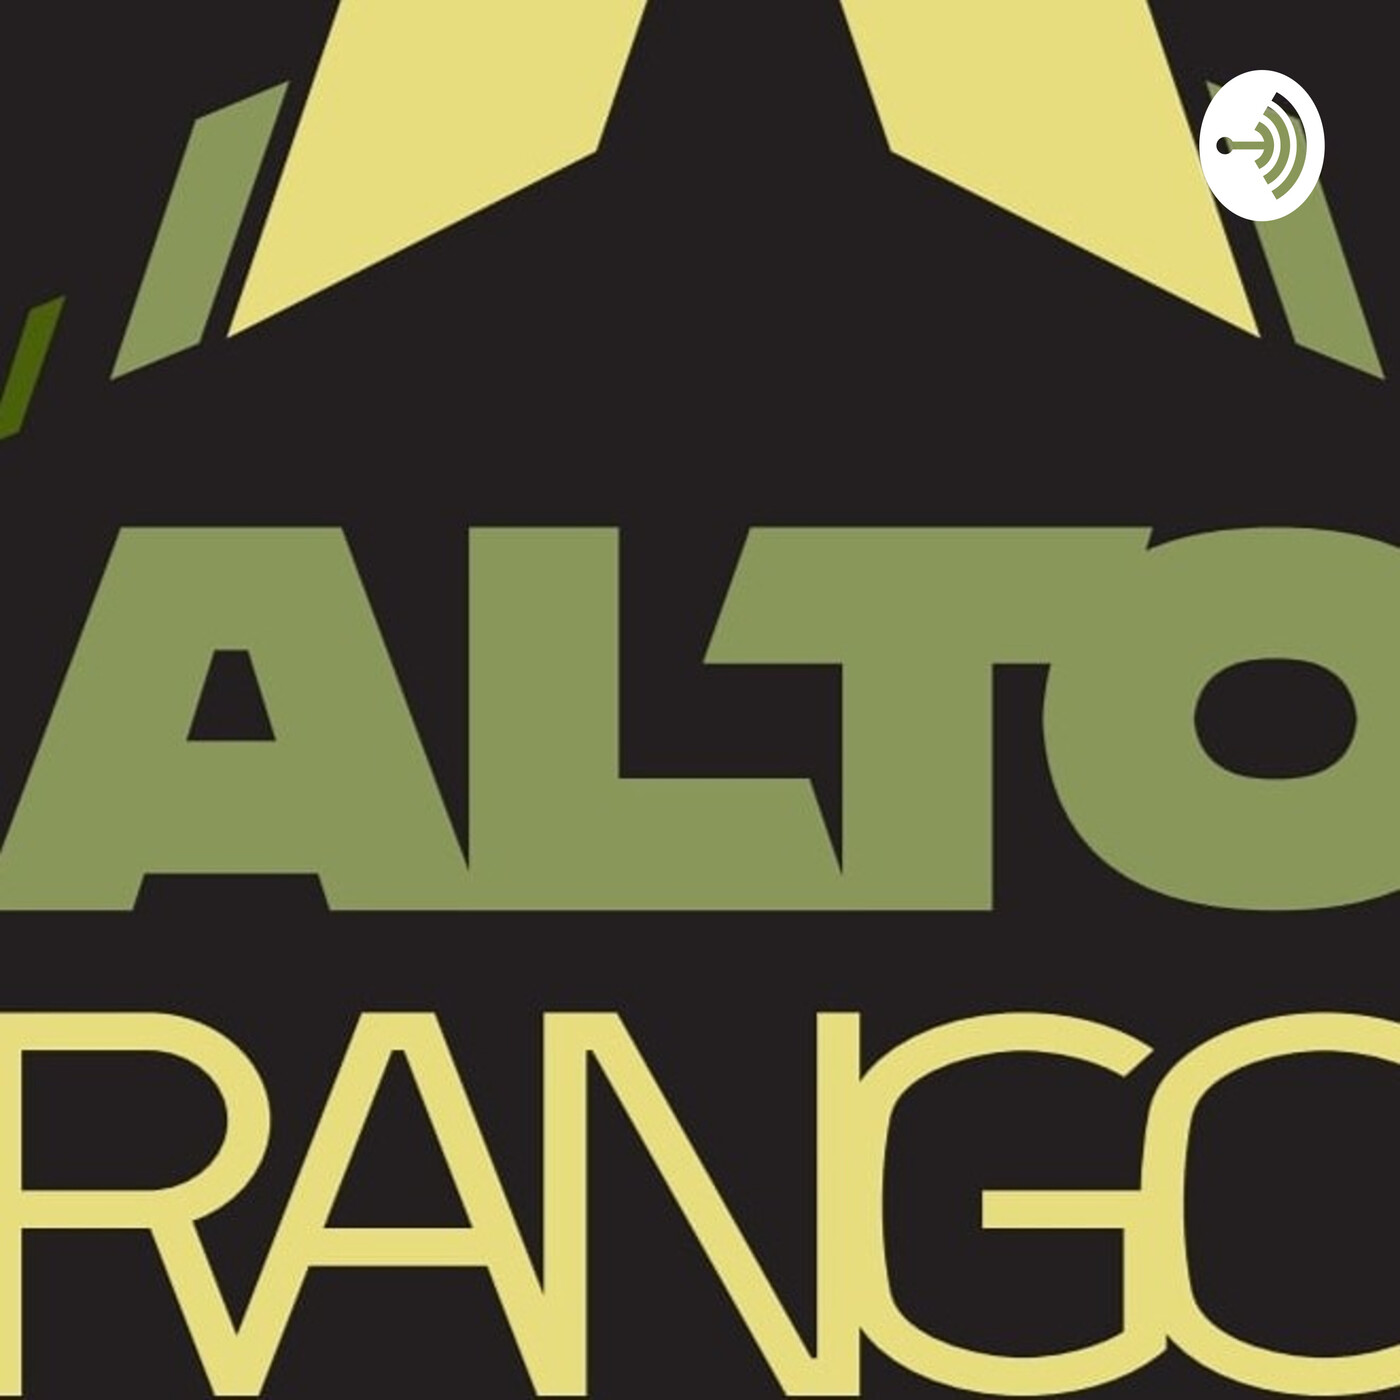 20 oct alto rango radio teodoro bello